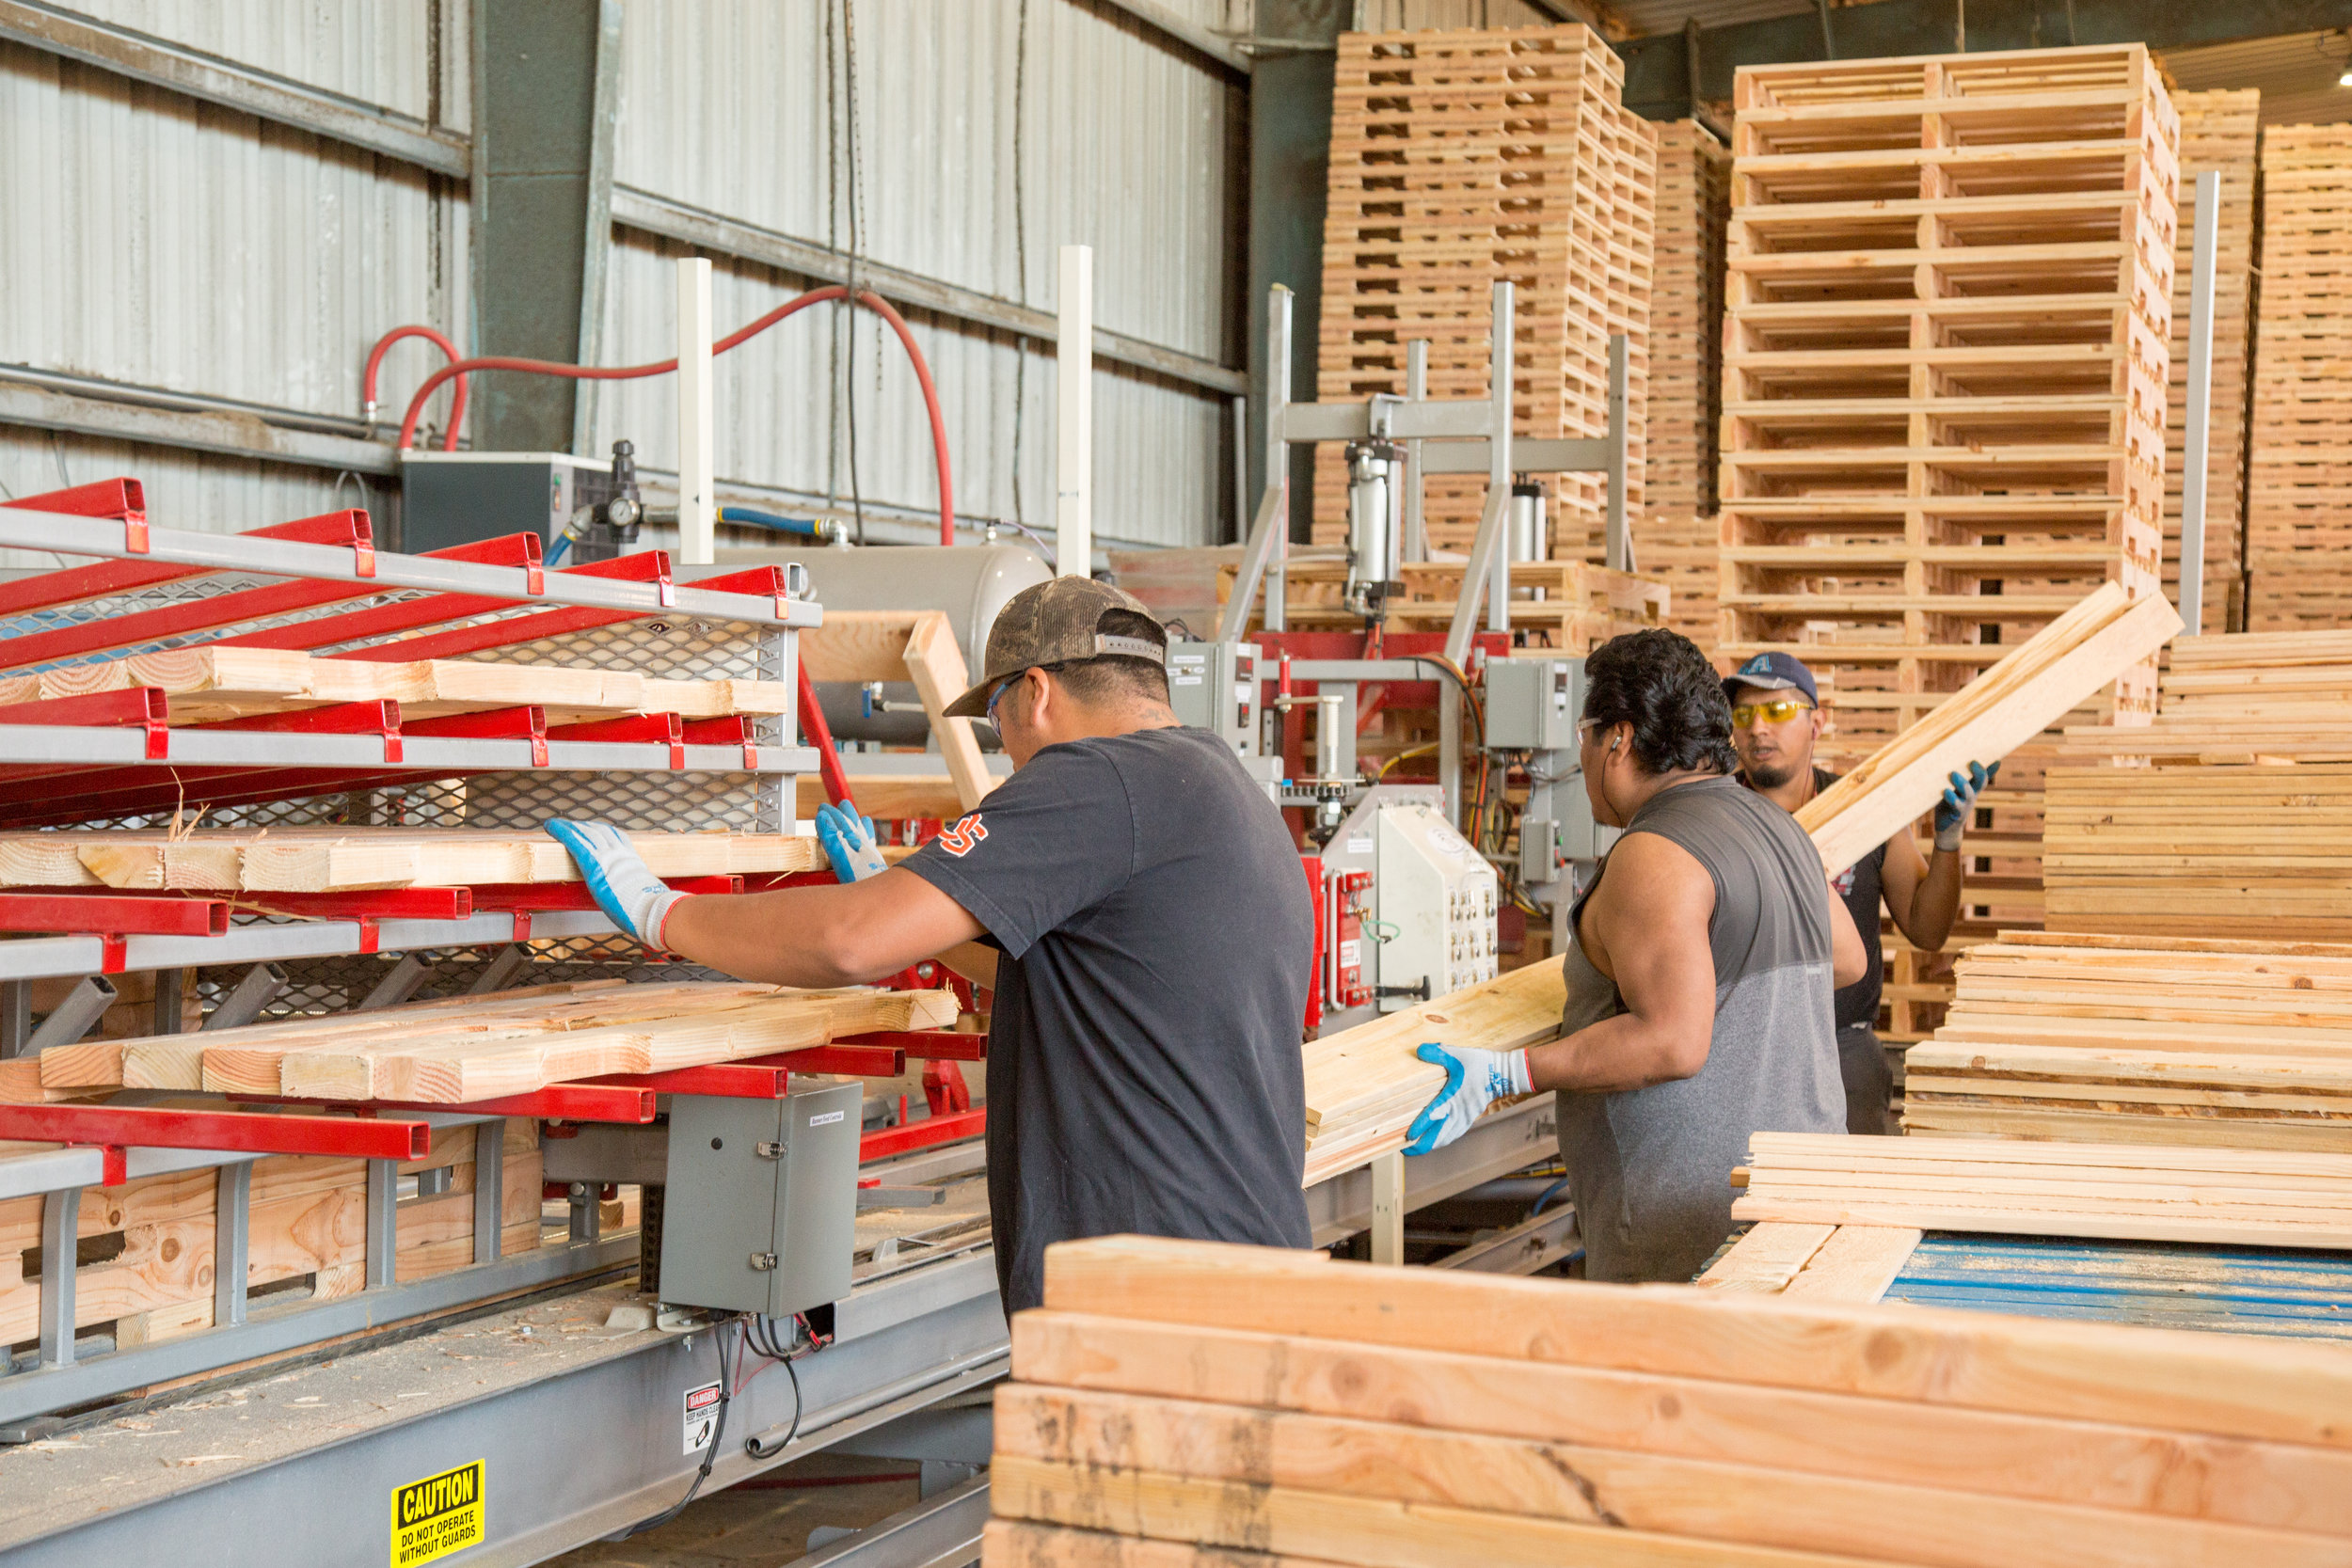 Copy of Turner Lumber Products and Business Photos 2019 (70).jpg